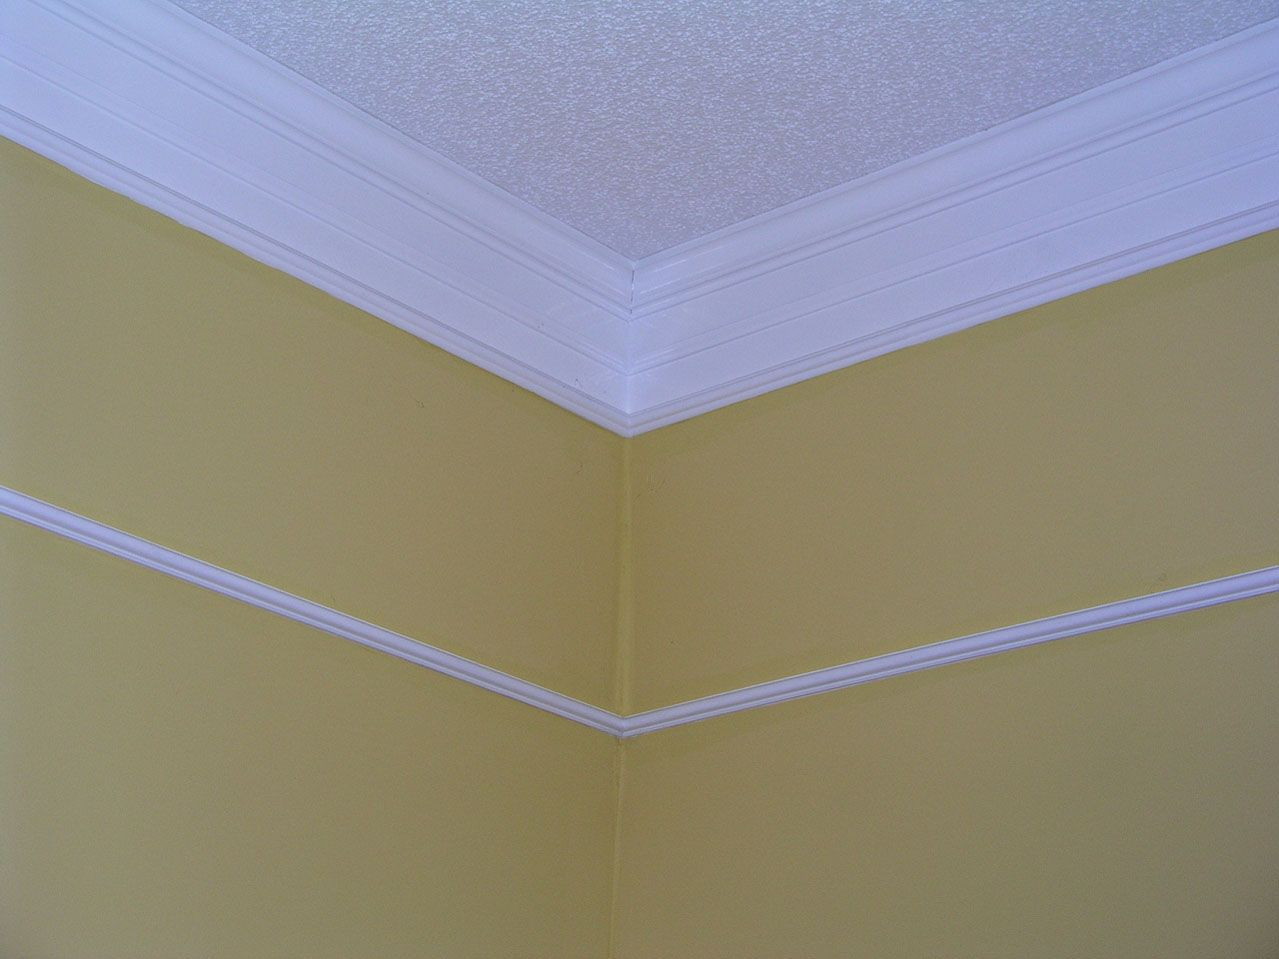 Using Crown Molding To Hide Wallpaper Border